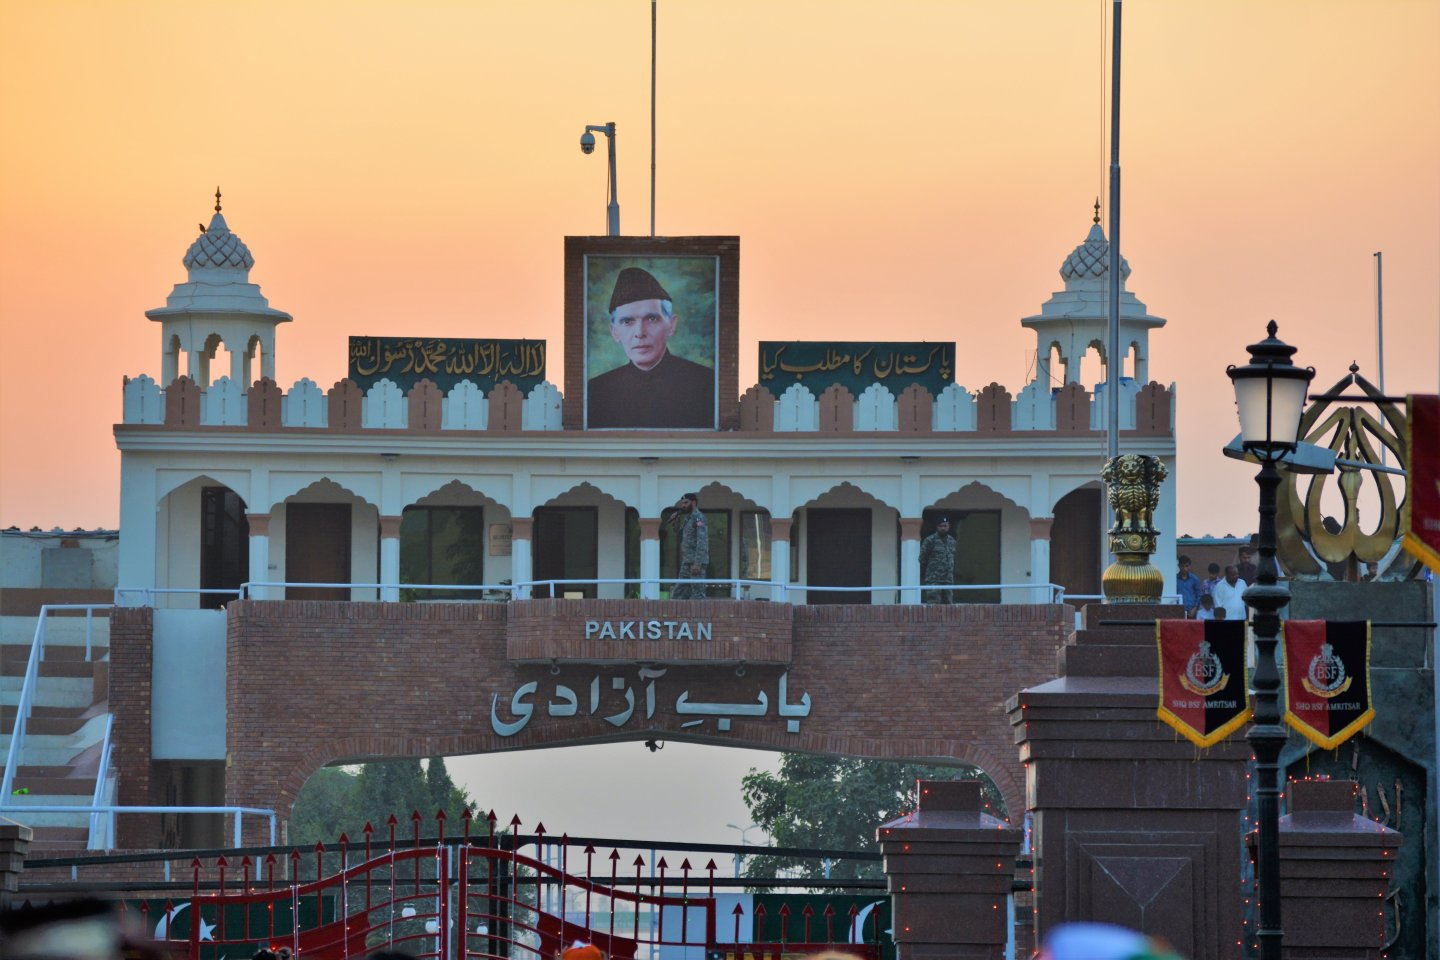 Crossing the Wagah Border